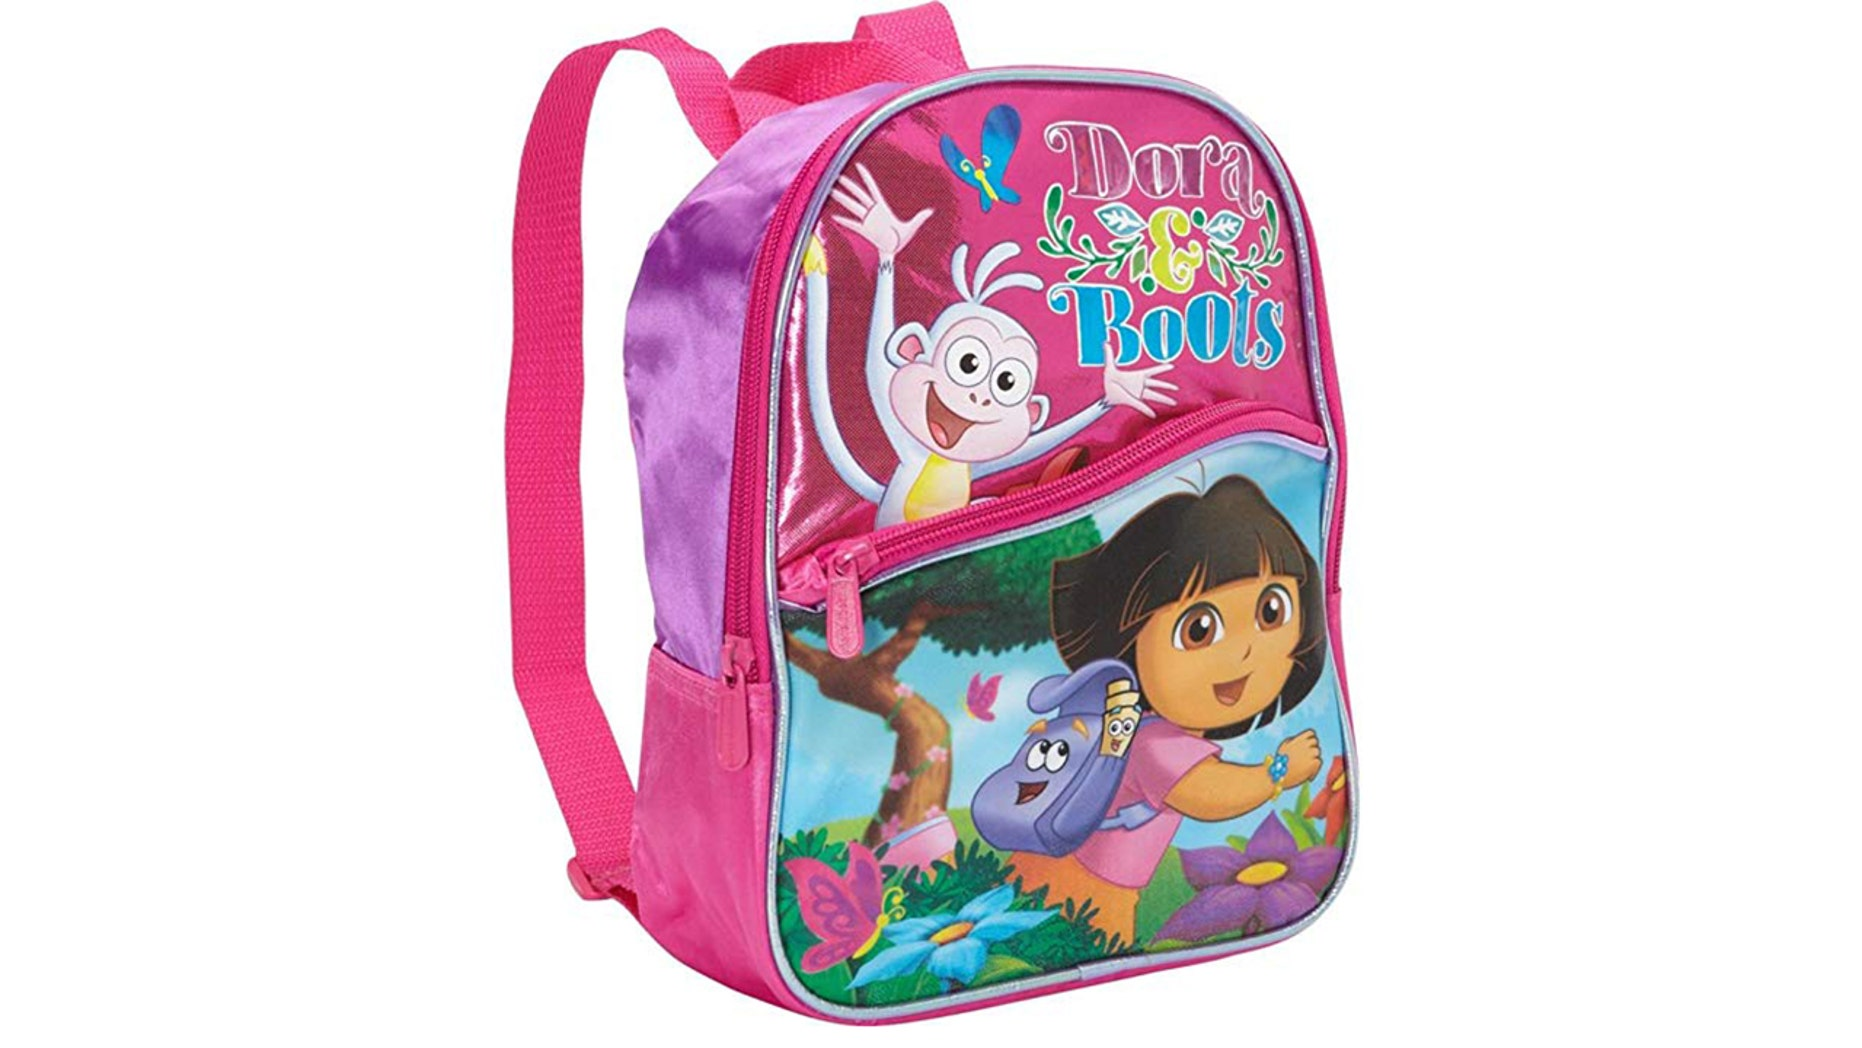 Pledges were forced to wear 'Dora the Explorer' backpacks.